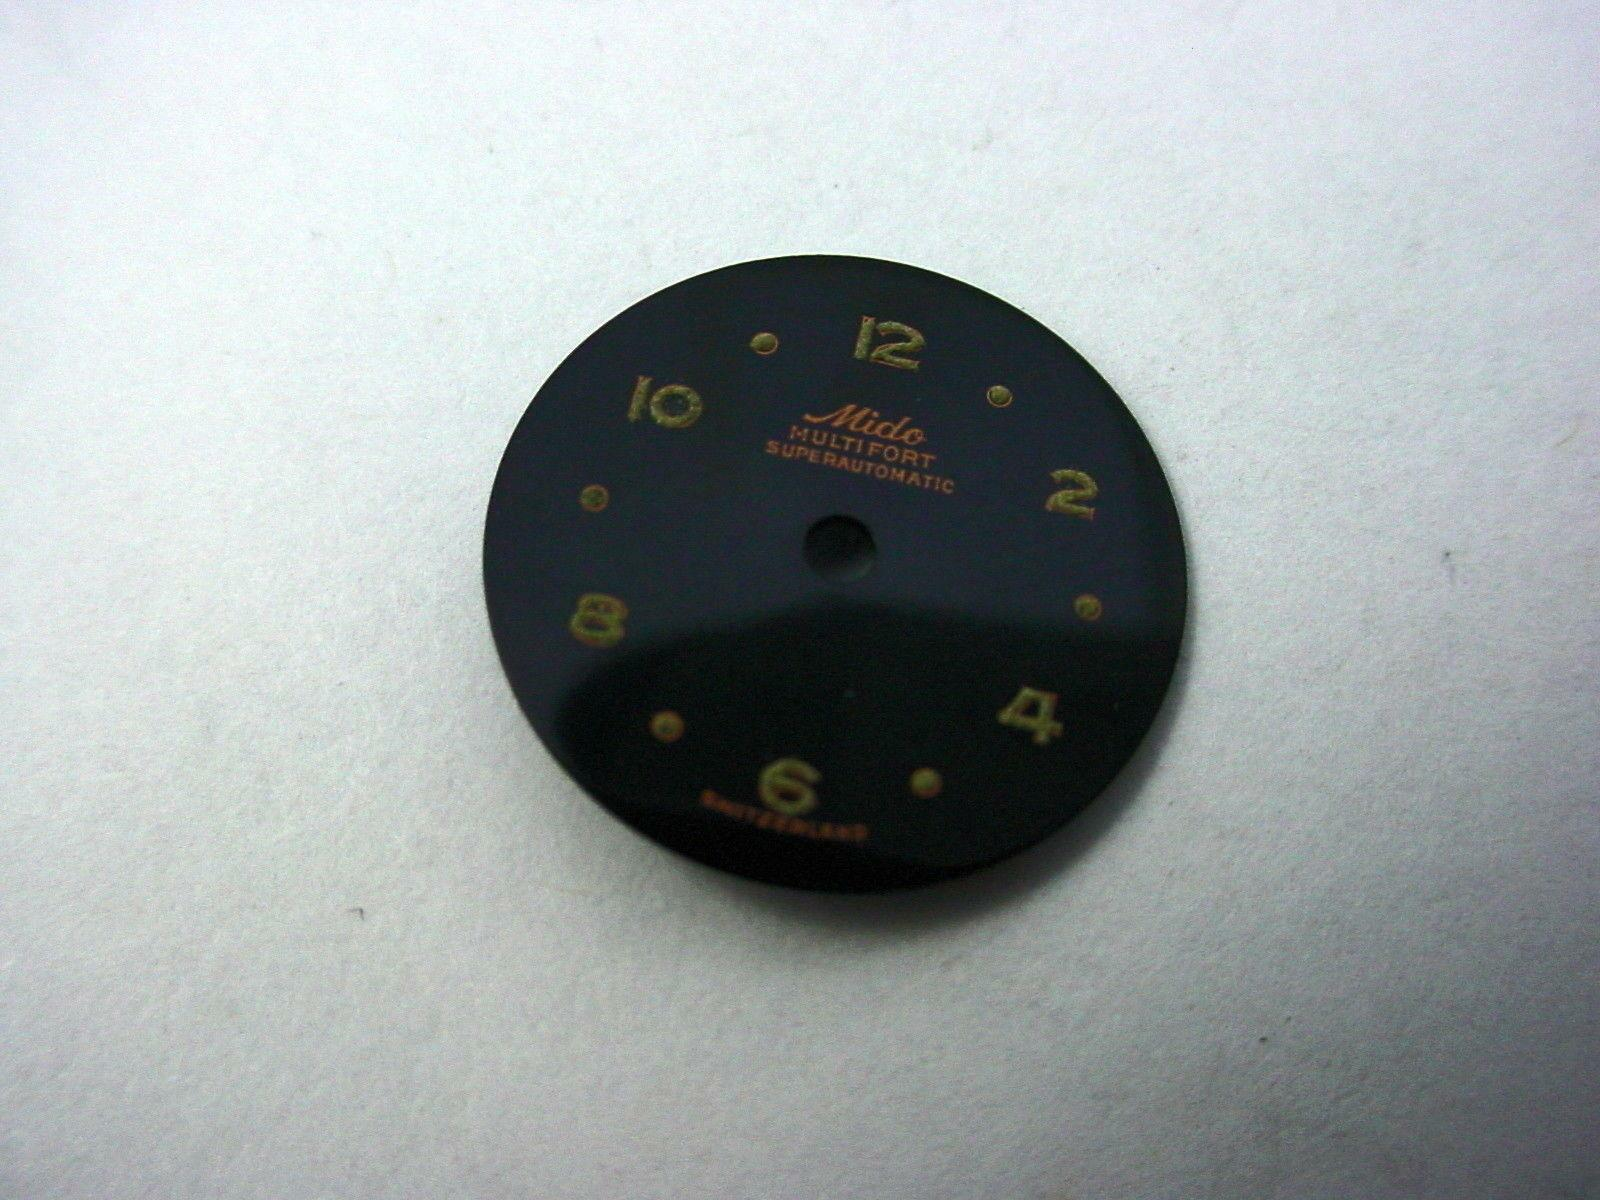 Superautomatic Multifort Mido Vintage Watch Dial Black 16.51mm Numeral & Dot Mrk